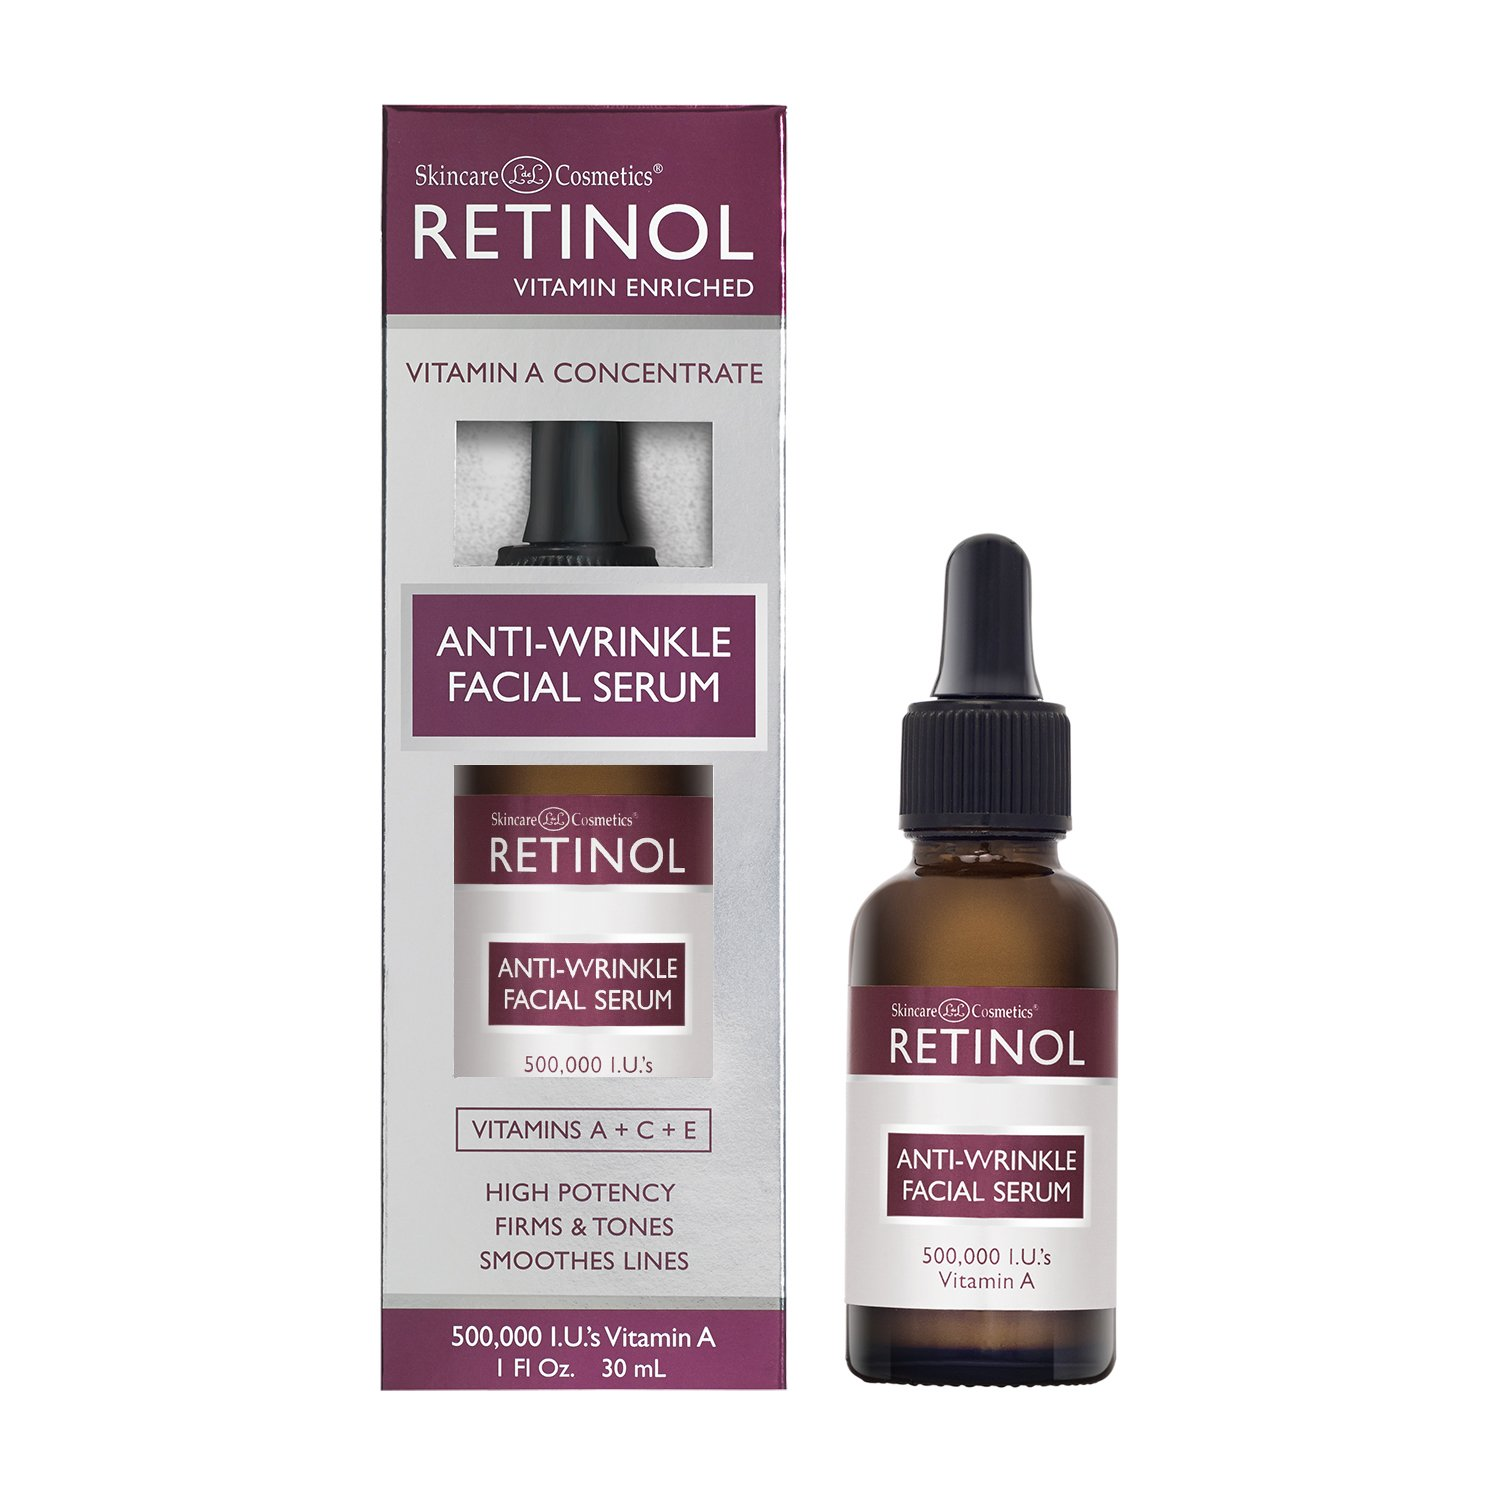 Skincare LdeL Cosmetics, Retinol Enriched Anti-Wrinkle Facial Serum, 1-Ounce Bottle 56511-000